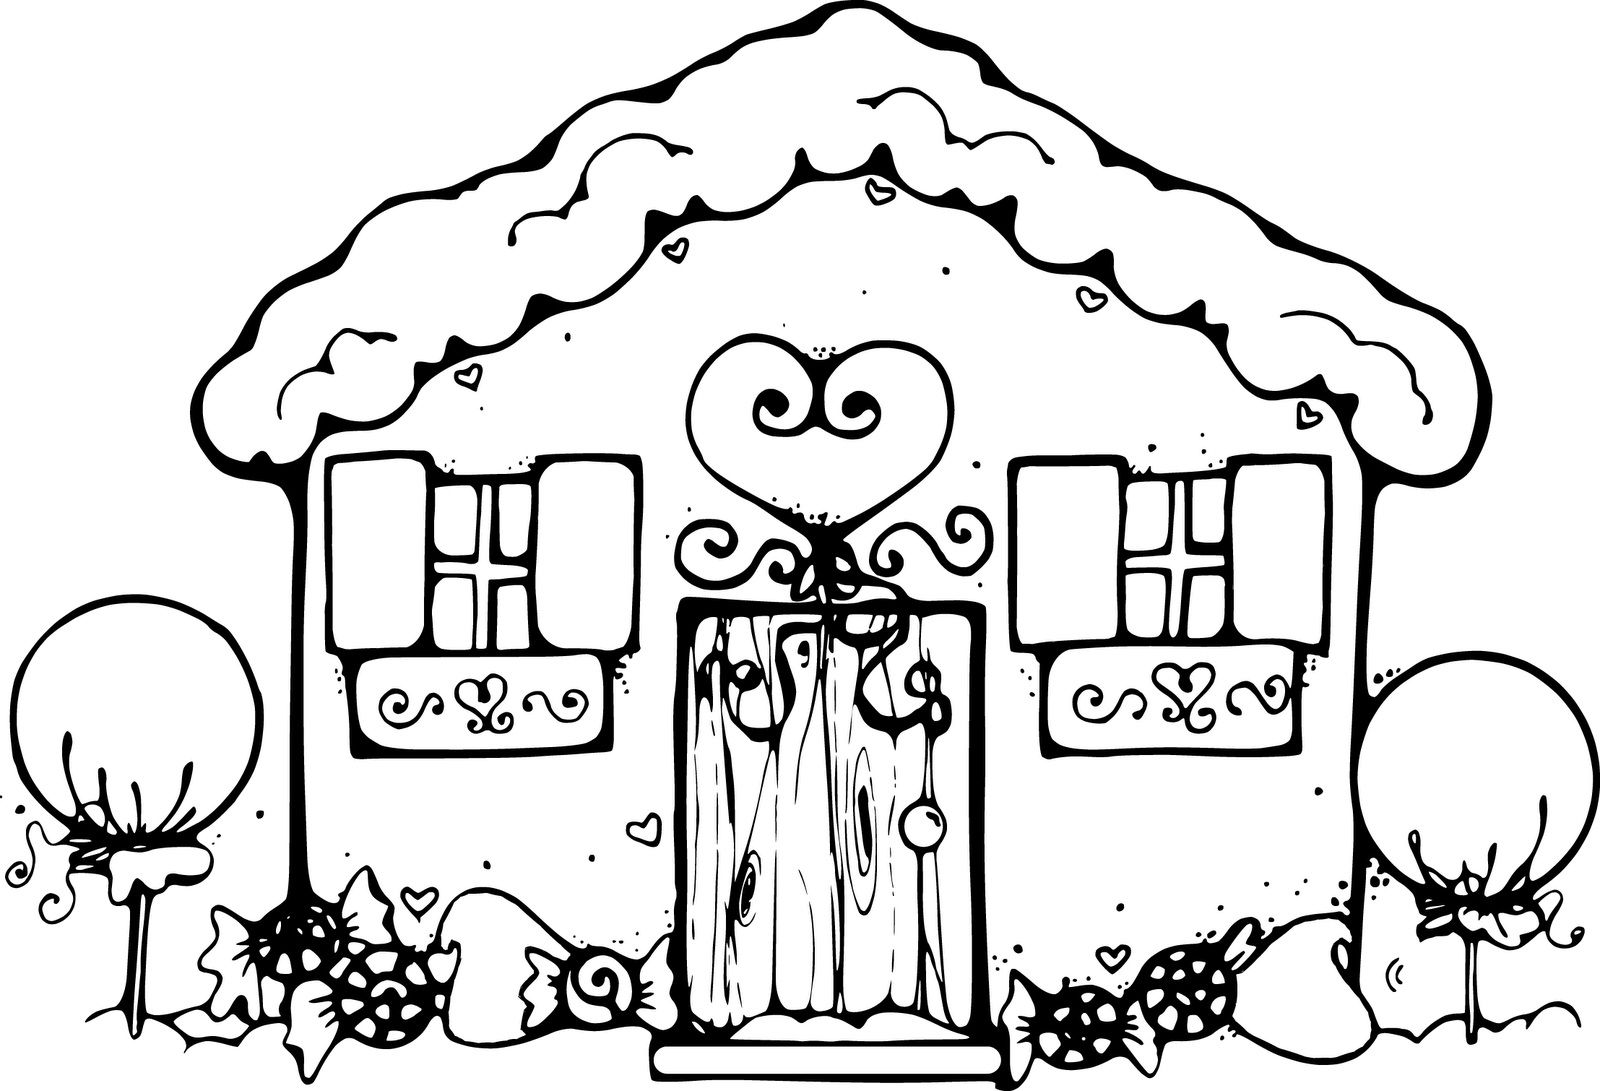 coloring worksheets house free printable house coloring pages for kids coloring worksheets house 1 2